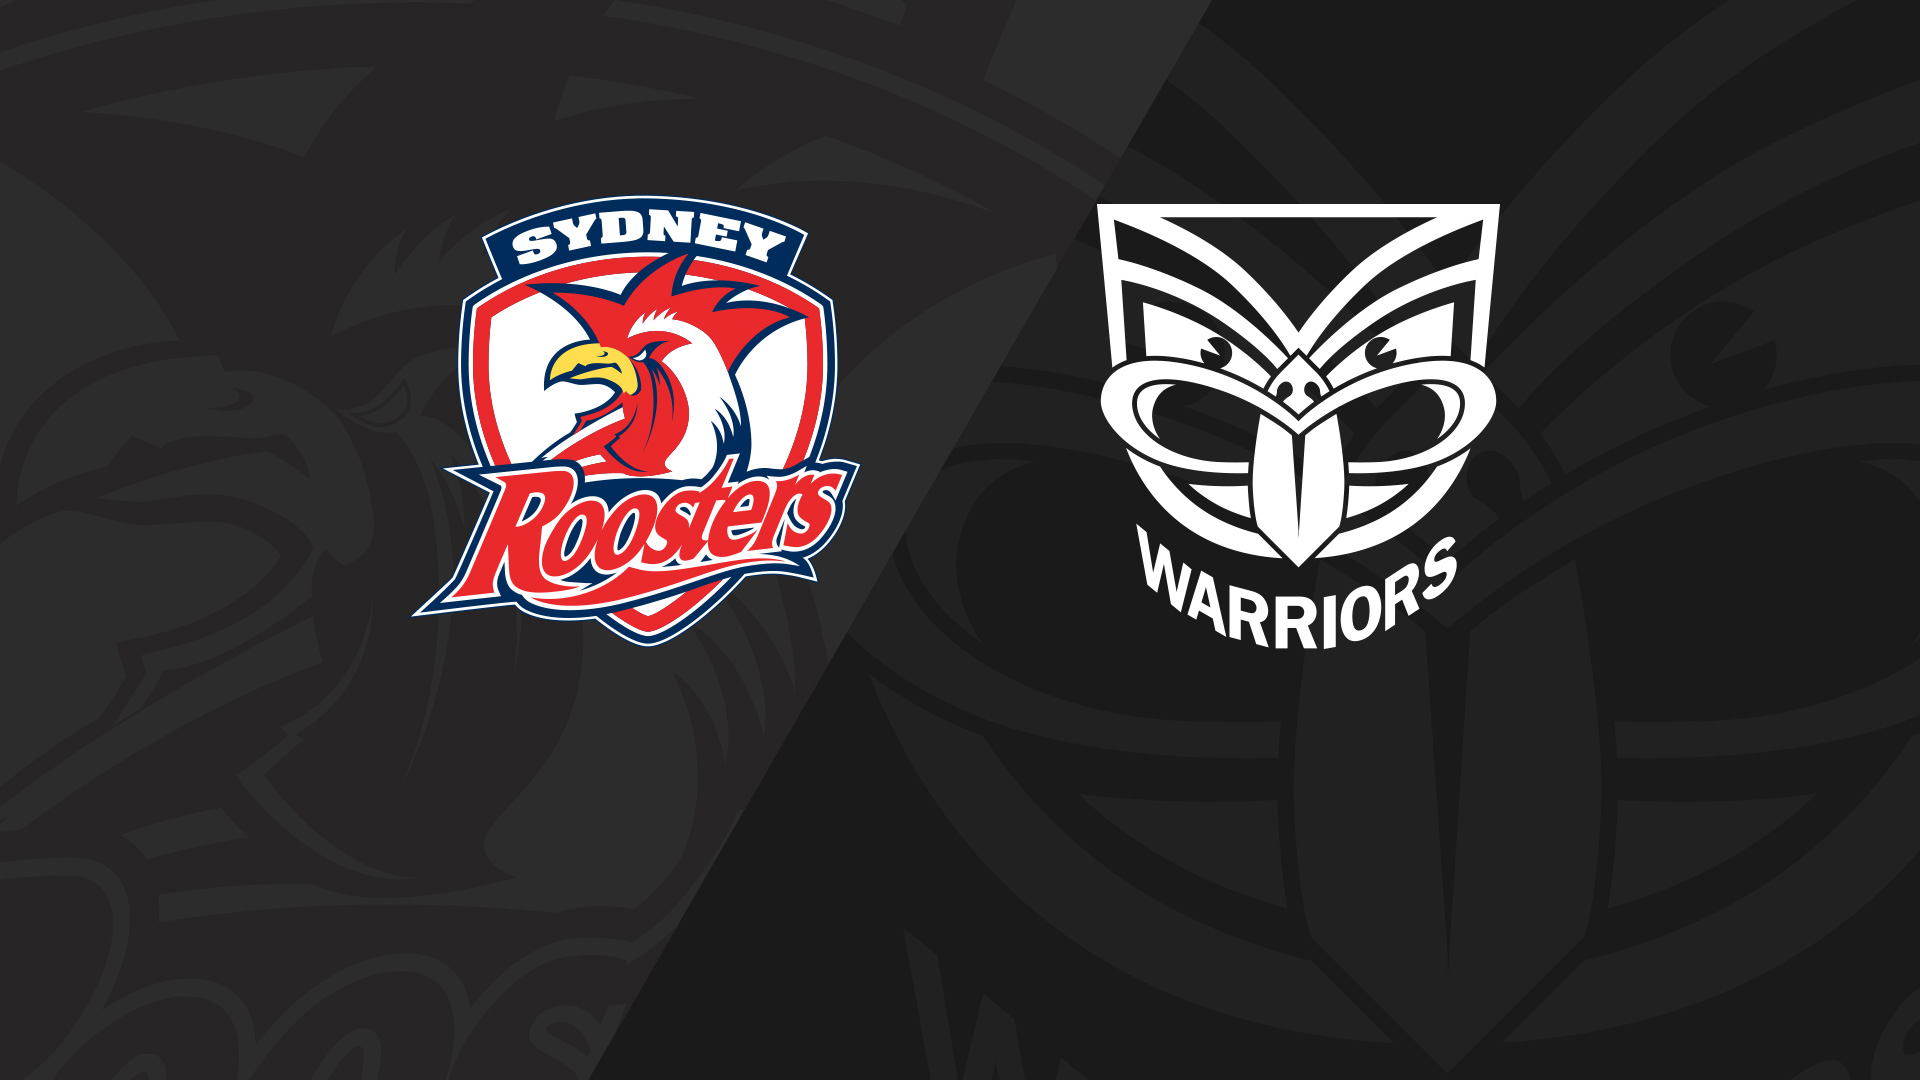 Full Match Replay: NRLW Roosters v Warriors - Round 1, 2018